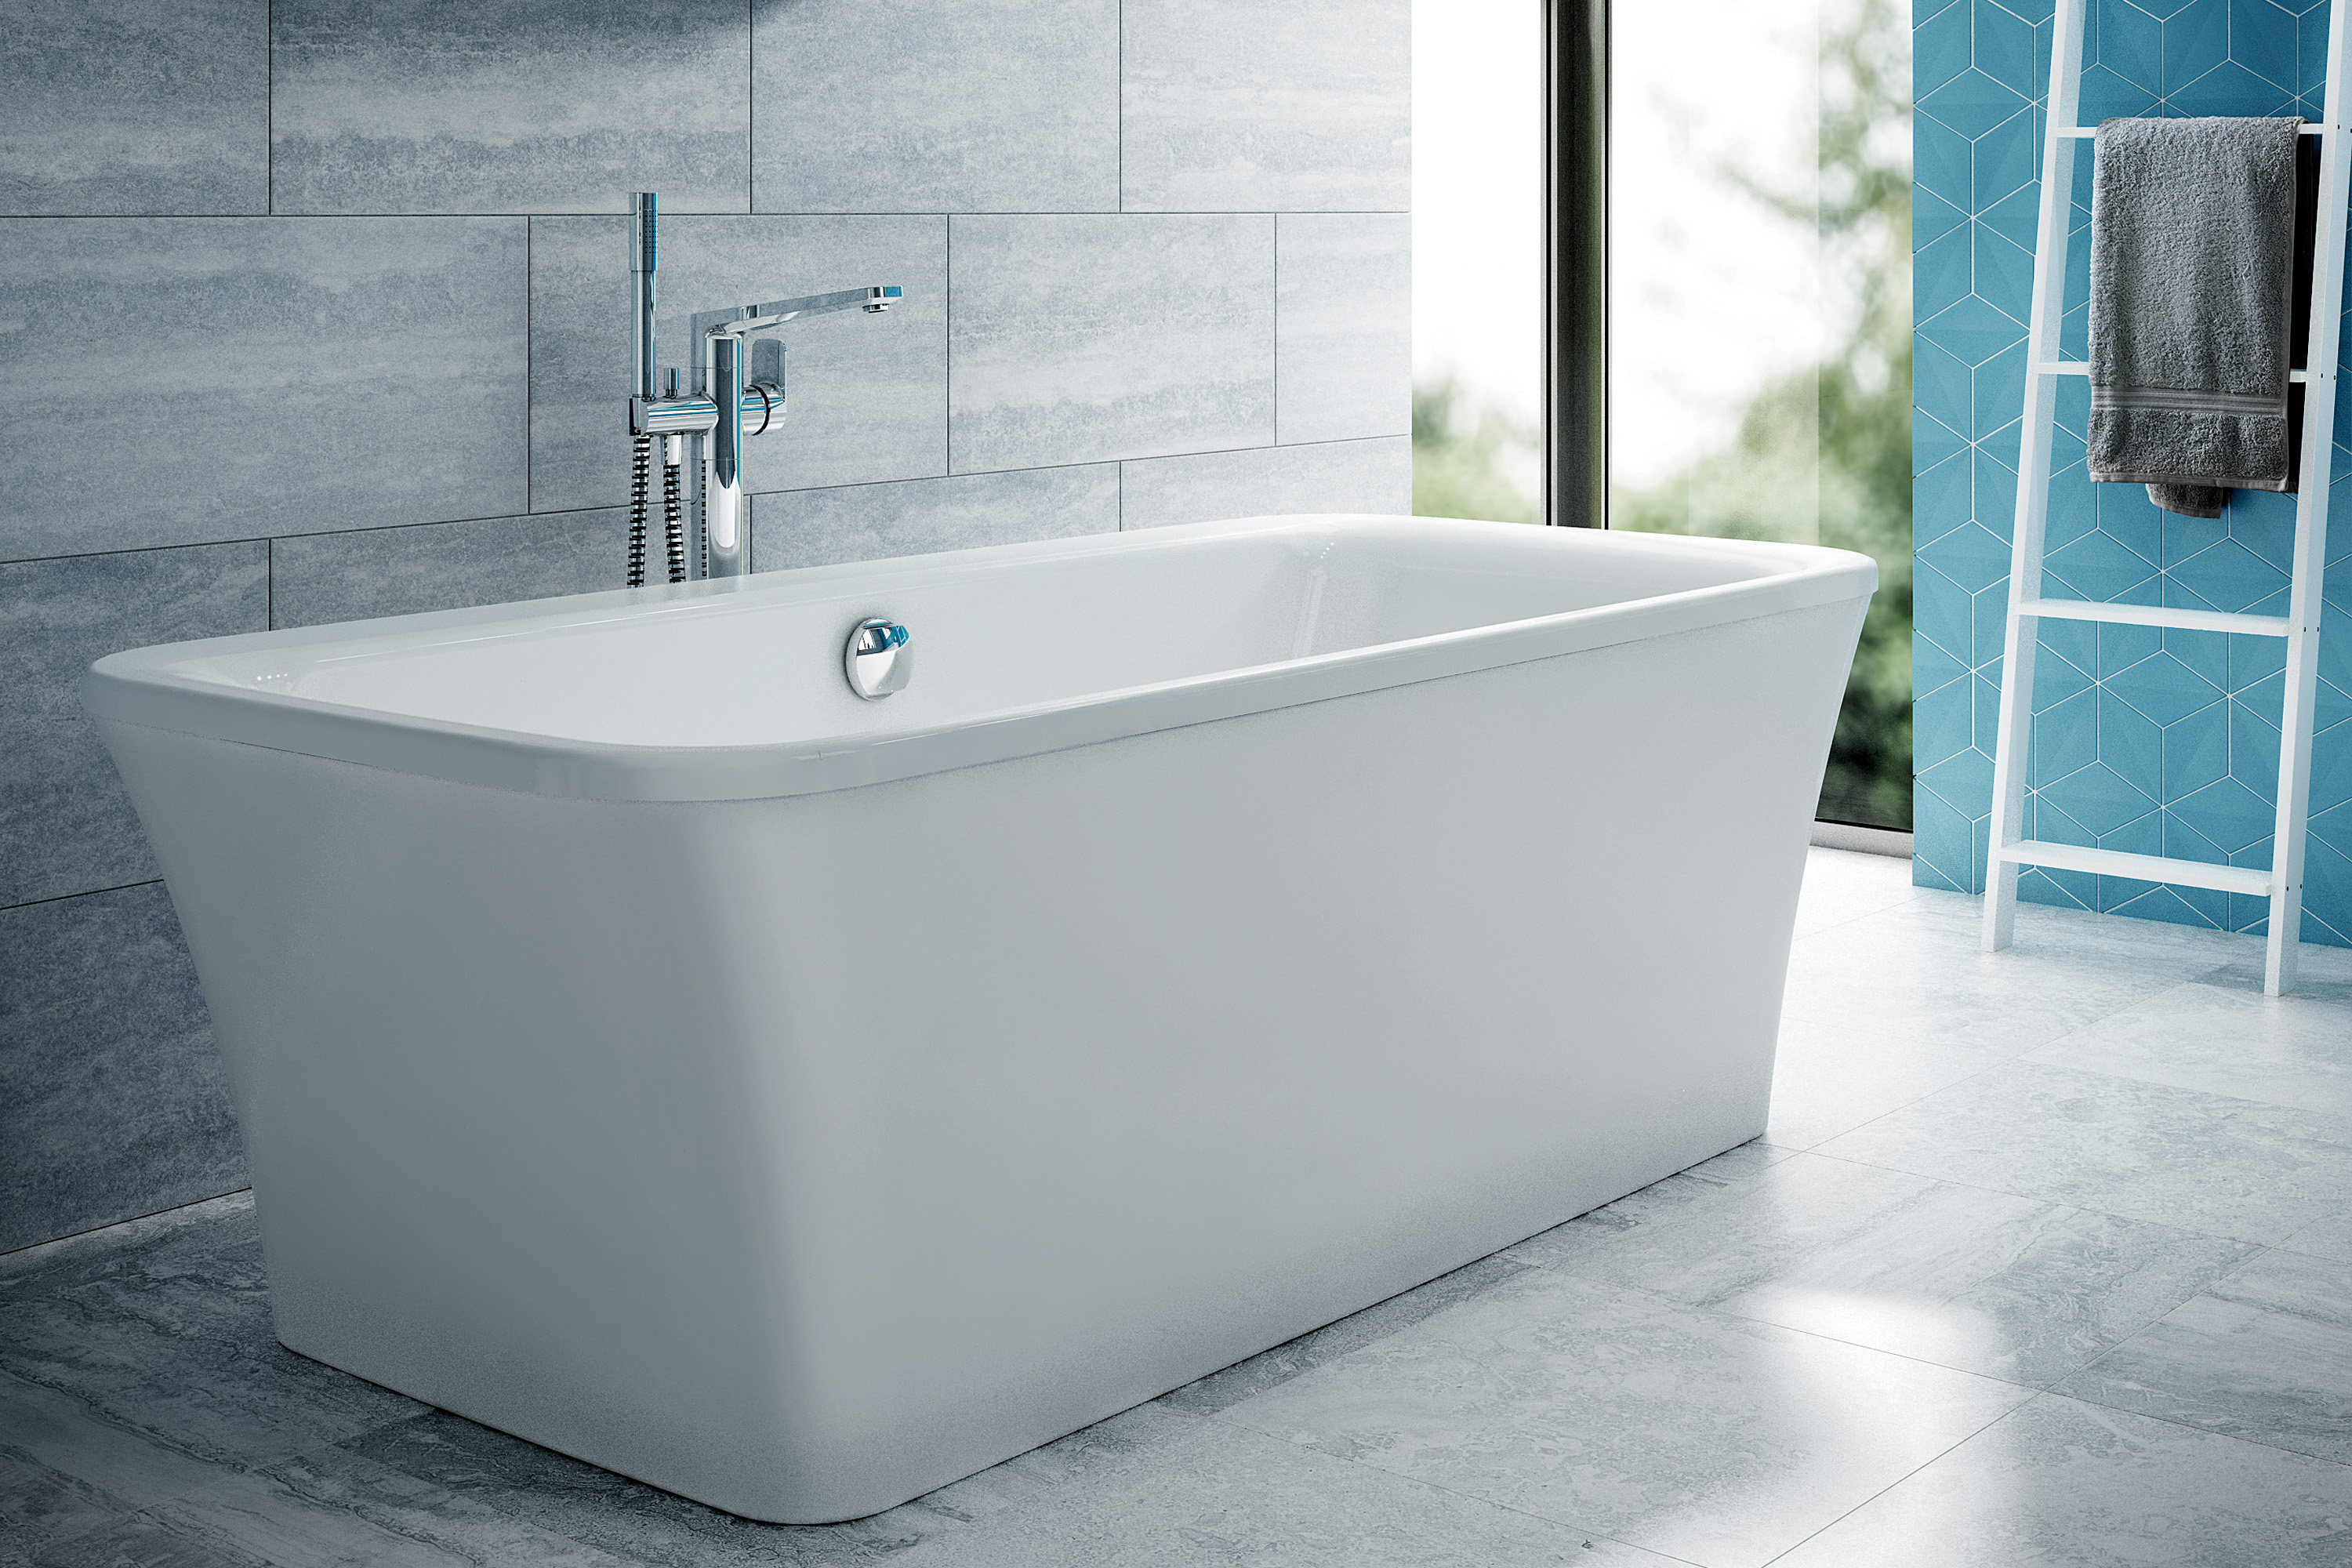 Bathtub_IS_ConnectAir;TonicII;E113801;A6347AA;free-standing;bathtuba